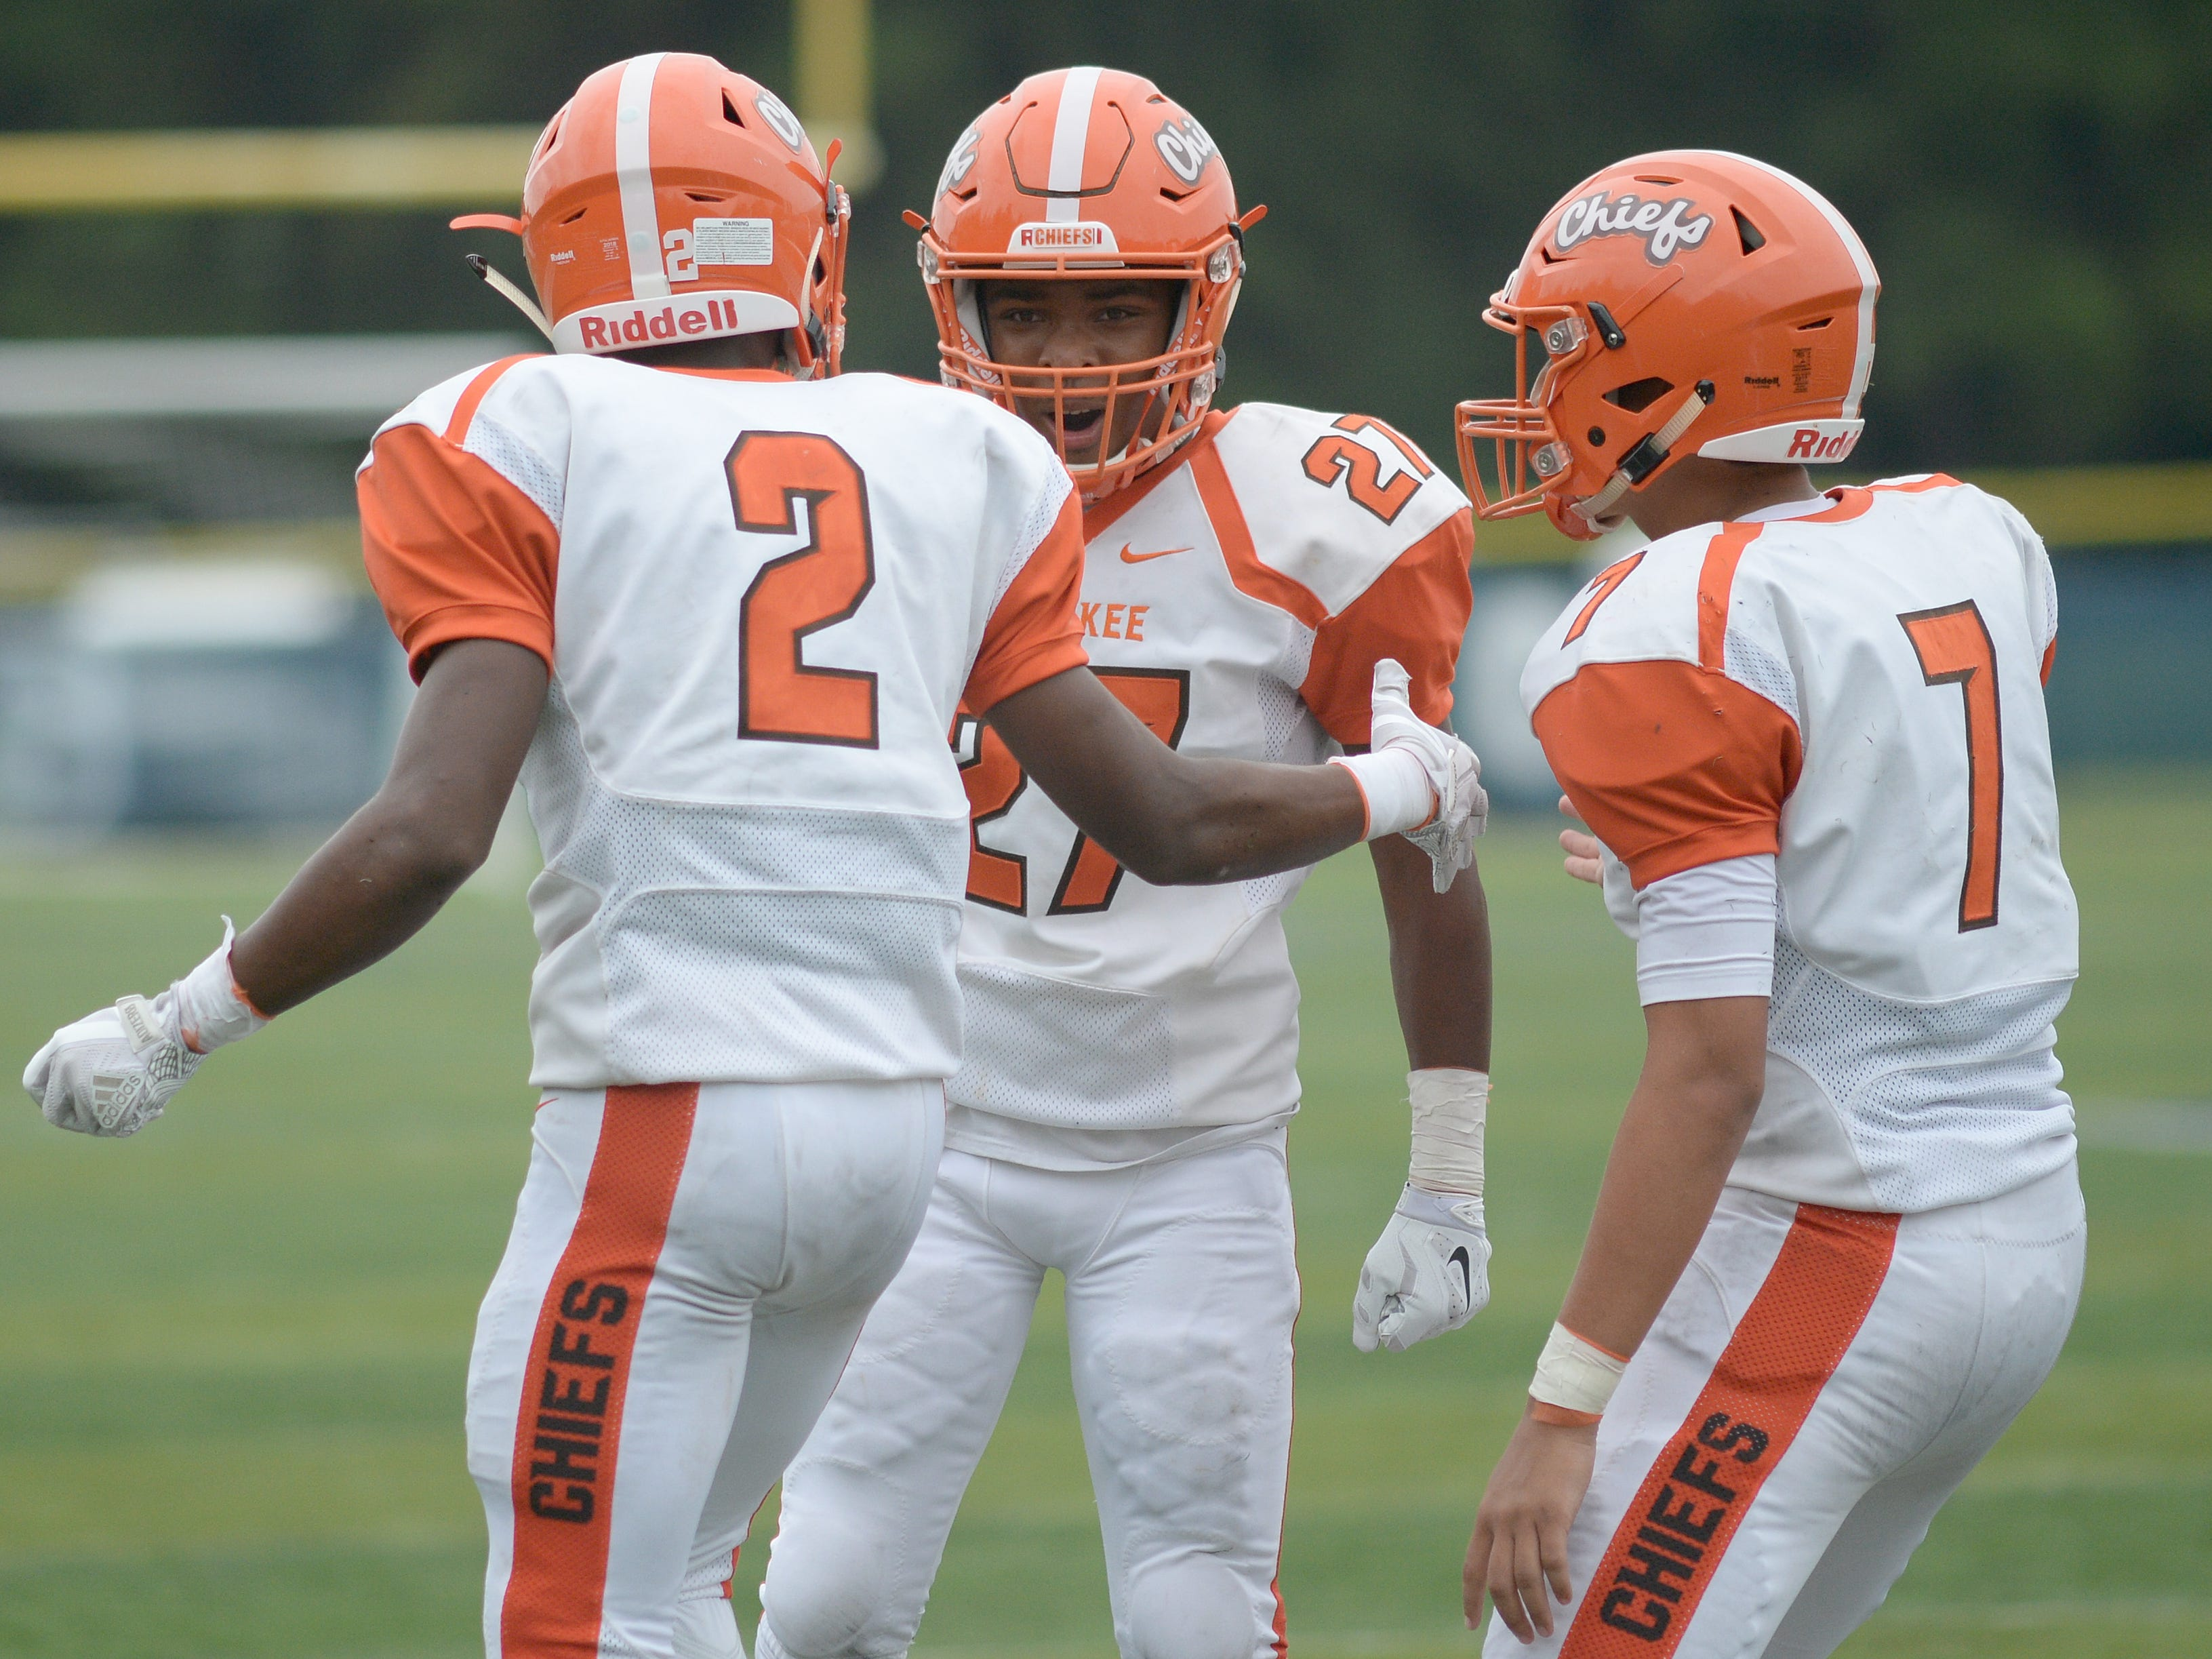 Cherokee's players celebrate with Darnell Hightower, center, after catching a touchdown pass during Saturday's football game against Shawnee at Shawnee High School,  Sept. 8, 2018.